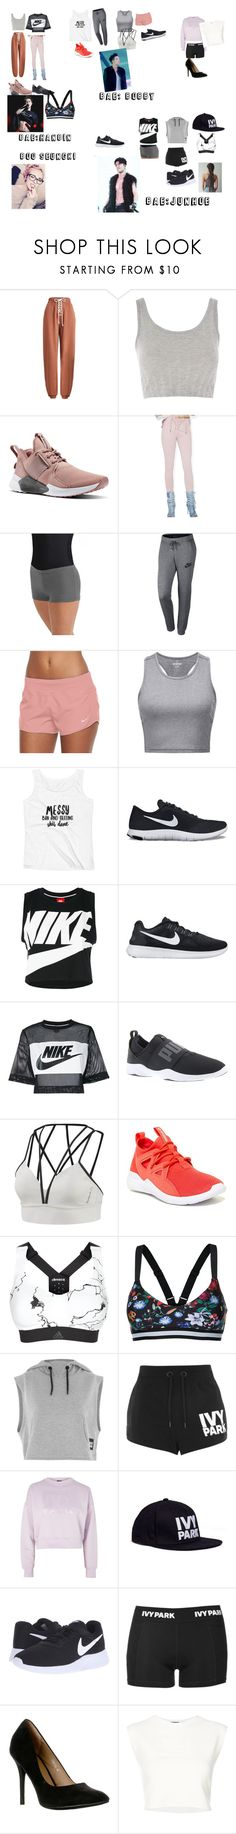 """""""Ikon outfits pt.1"""" by minianajesus ❤ liked on Polyvore featuring Puma, Topshop, Reebok, Dance & Marvel, NIKE, adidas, The Upside and Ivy Park"""